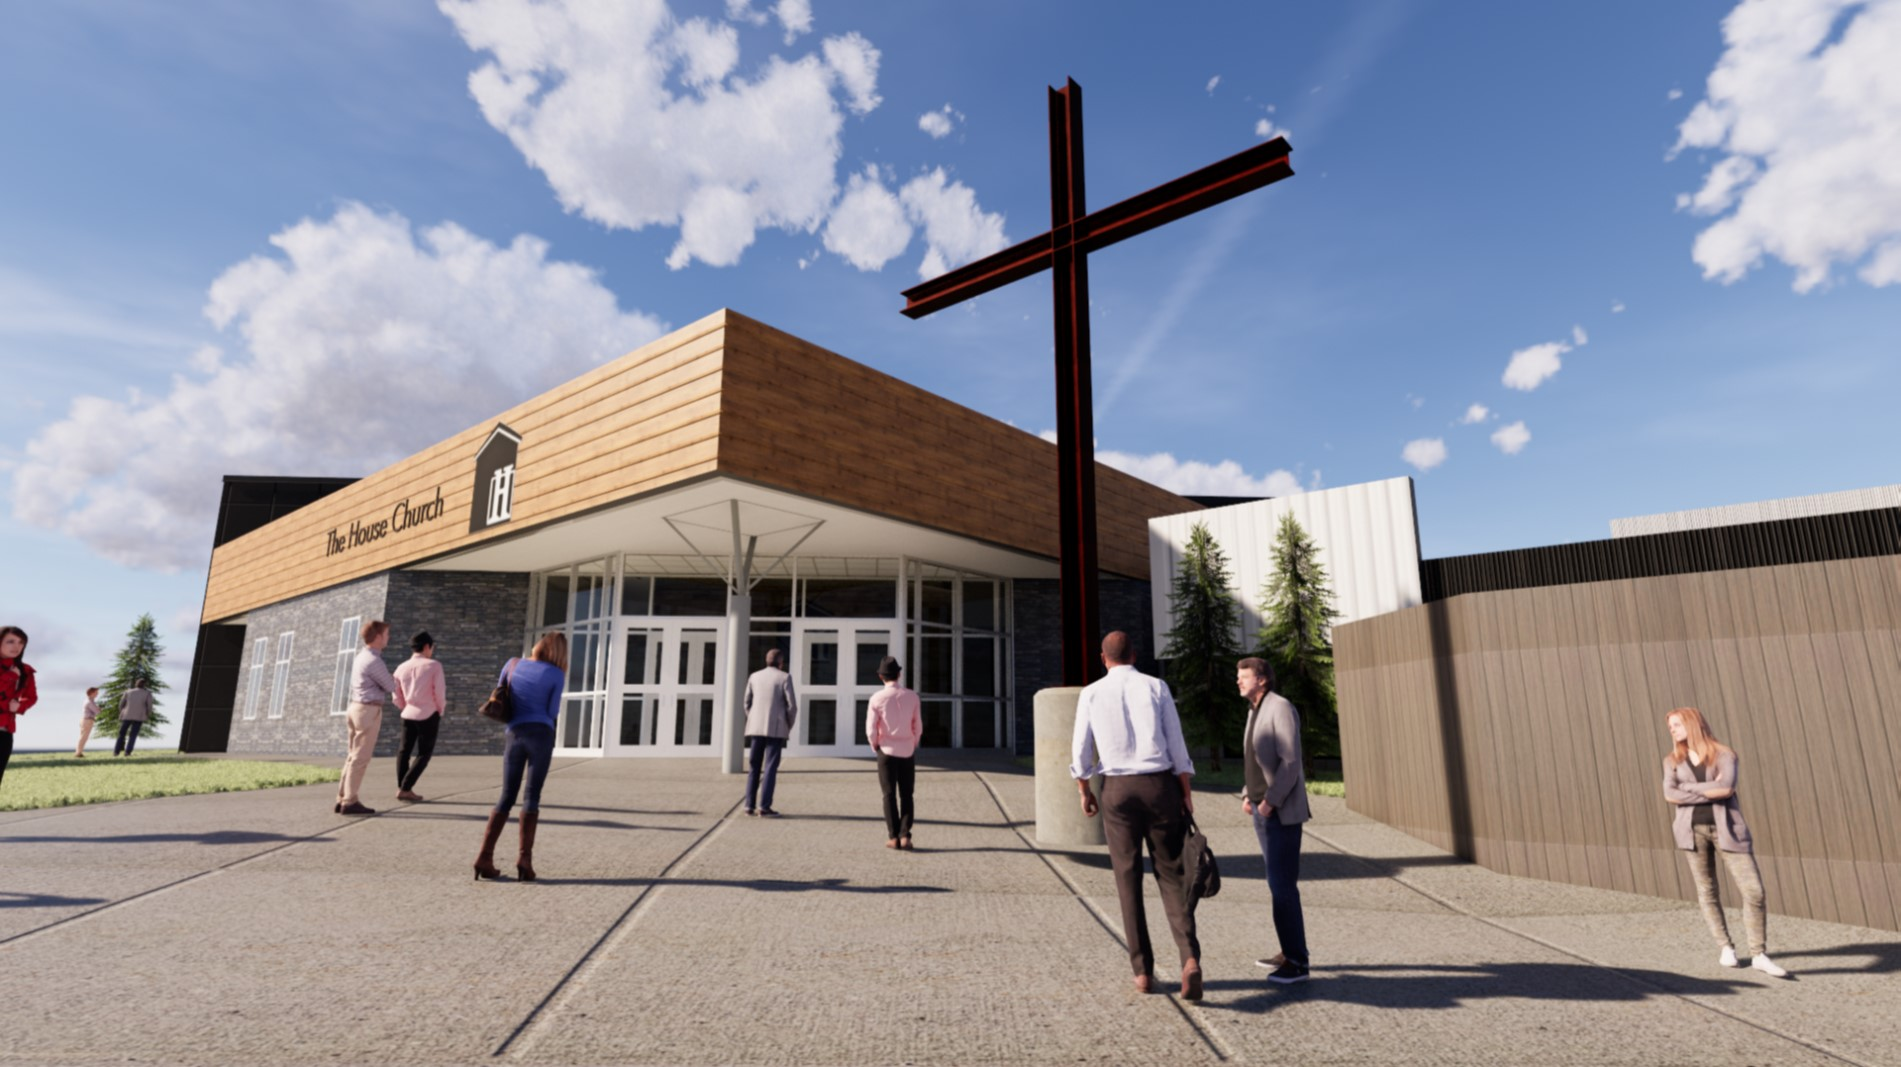 New Construction in Eagan, MN - The House Church